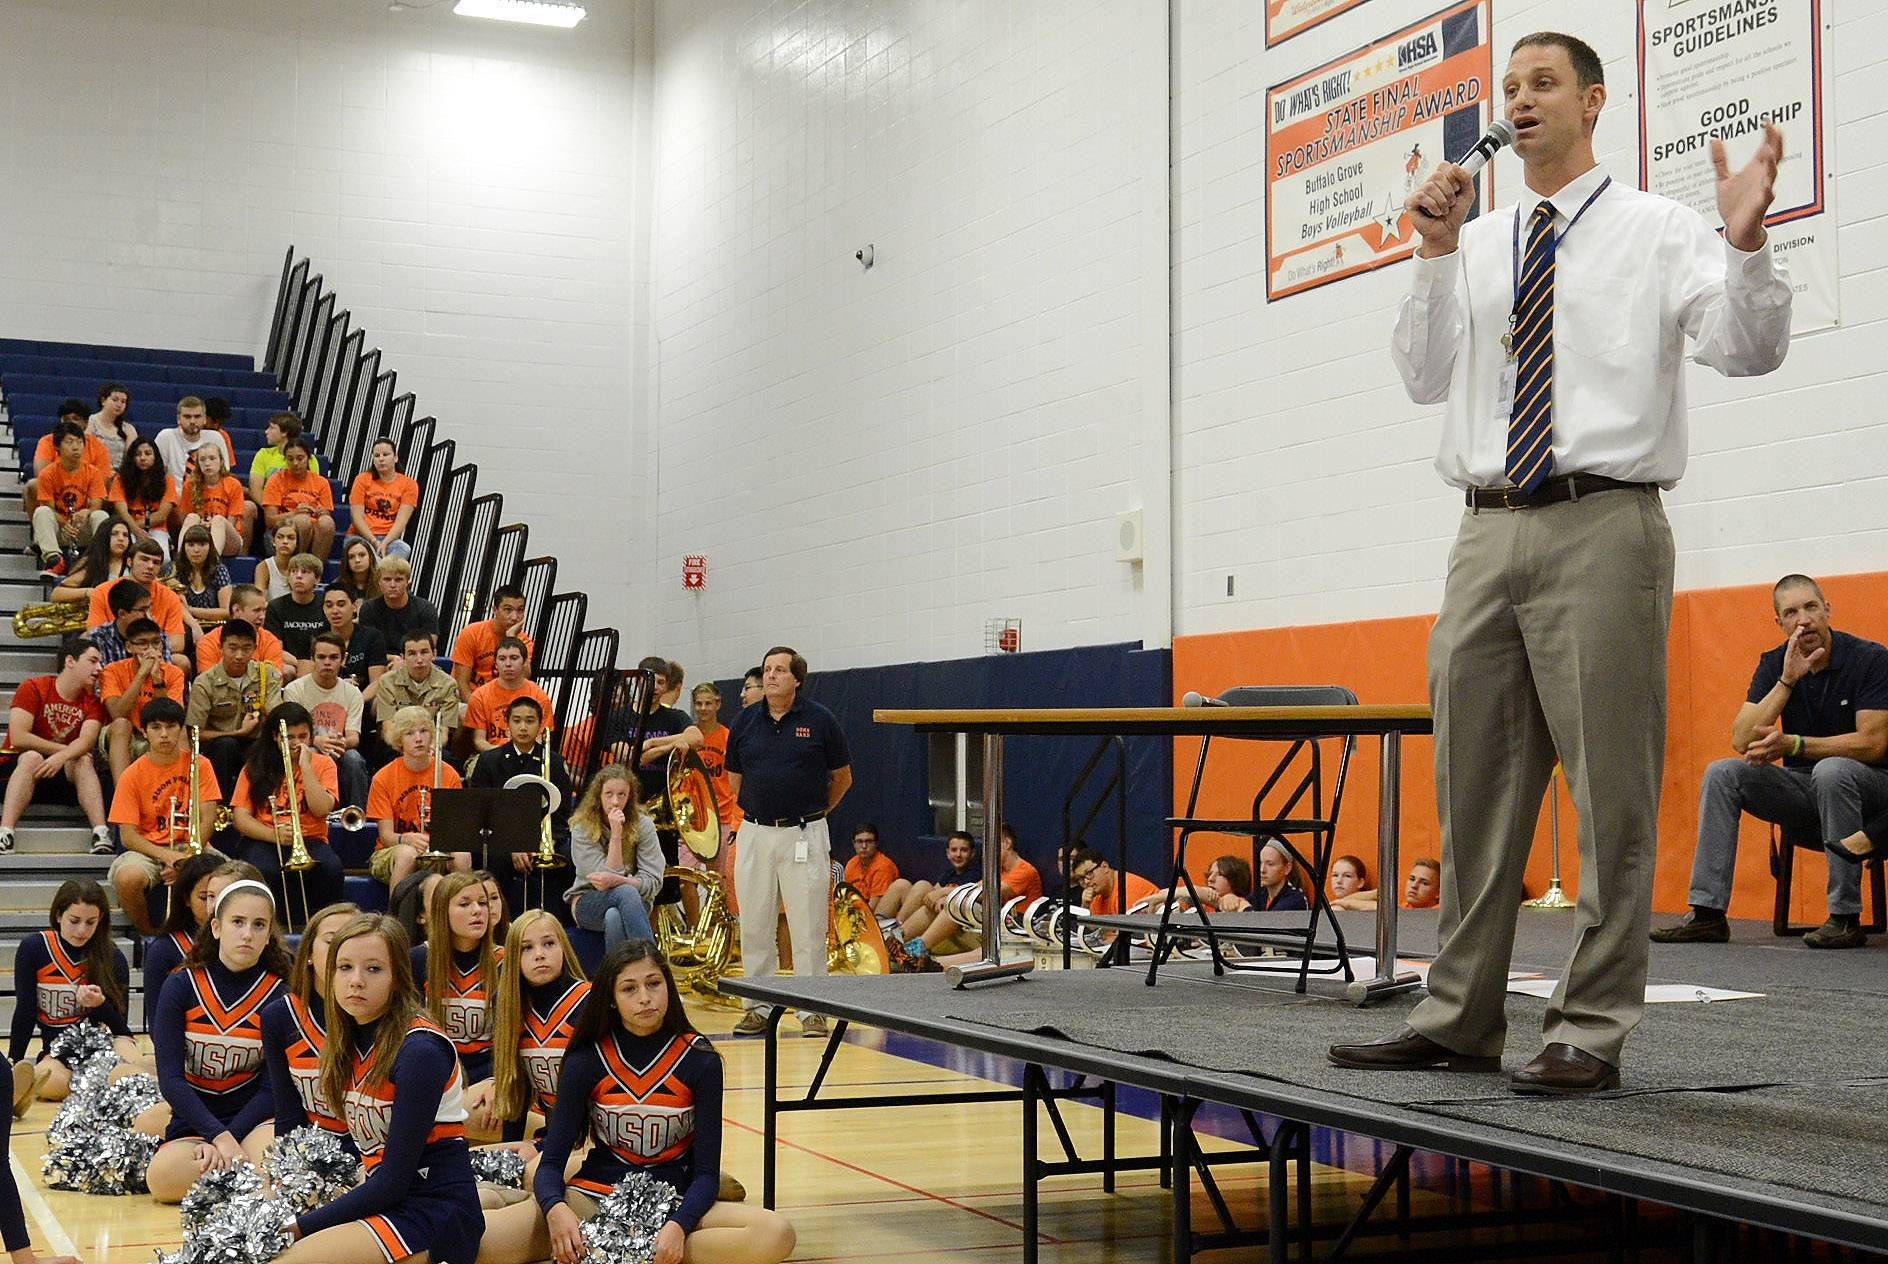 New principal Jeff Wardle addresses students during a back-to-school pep rally to kick off the first day of school at Buffalo Grove High School.